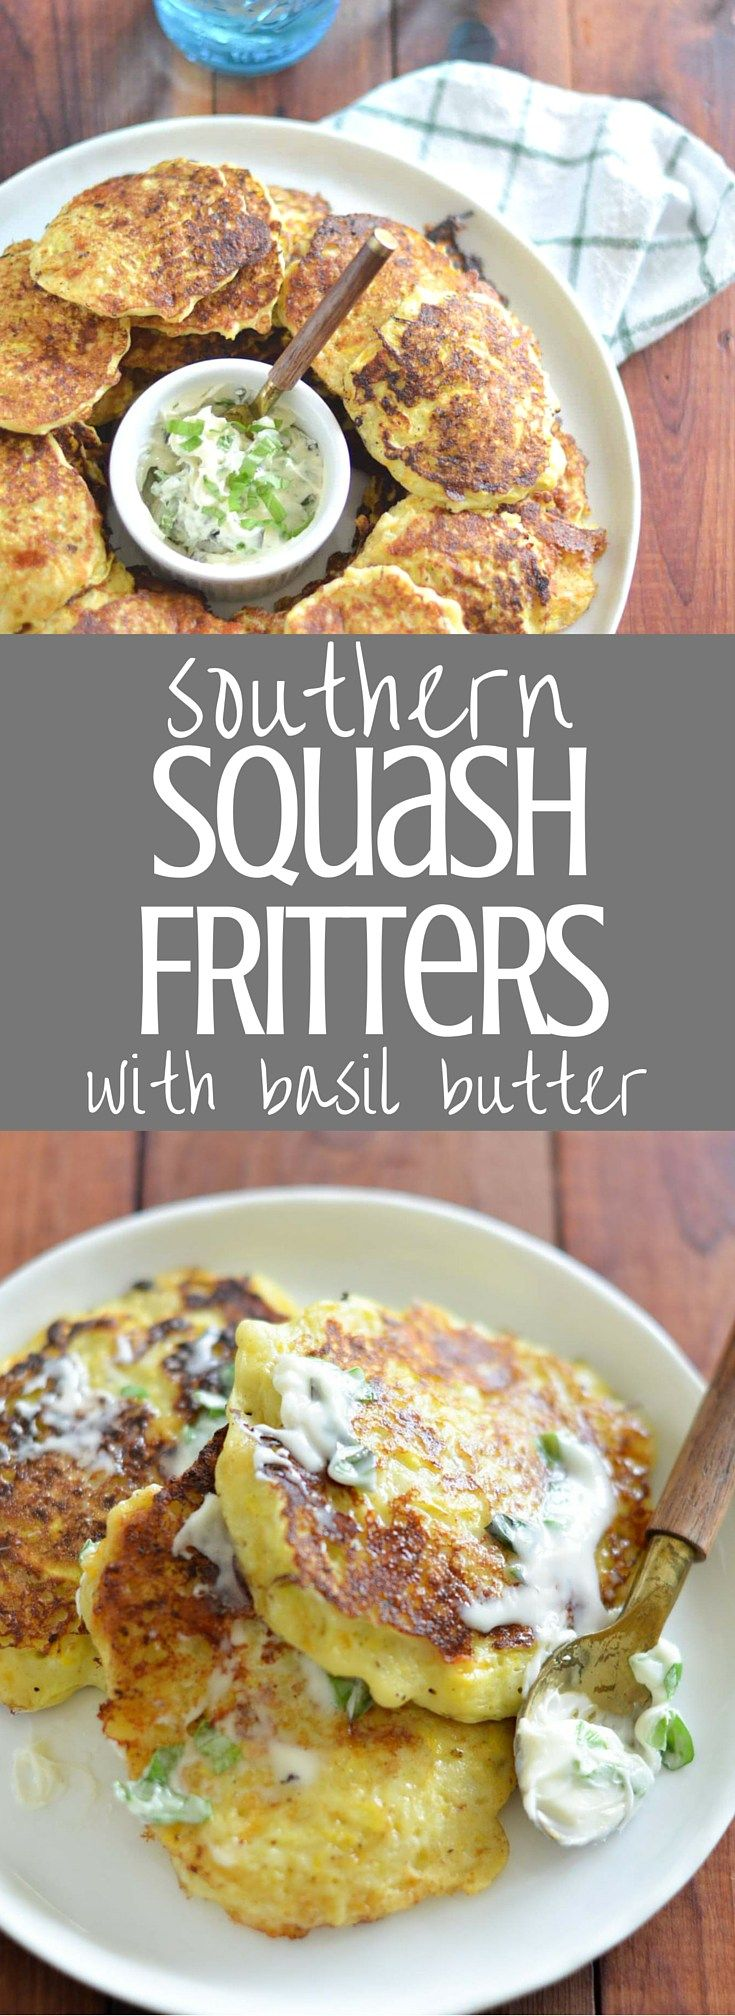 Squash Fritters with Basil Butter | A Southern classic, fresh summer squash is combined with onion and cheese and fried in a hot cast iron skillet to make these delicious fritters. Served with softened basil butter, squash fritters are the perfect appetizer or side for your next cookout or fish fry. Clickthrough for the full recipe!